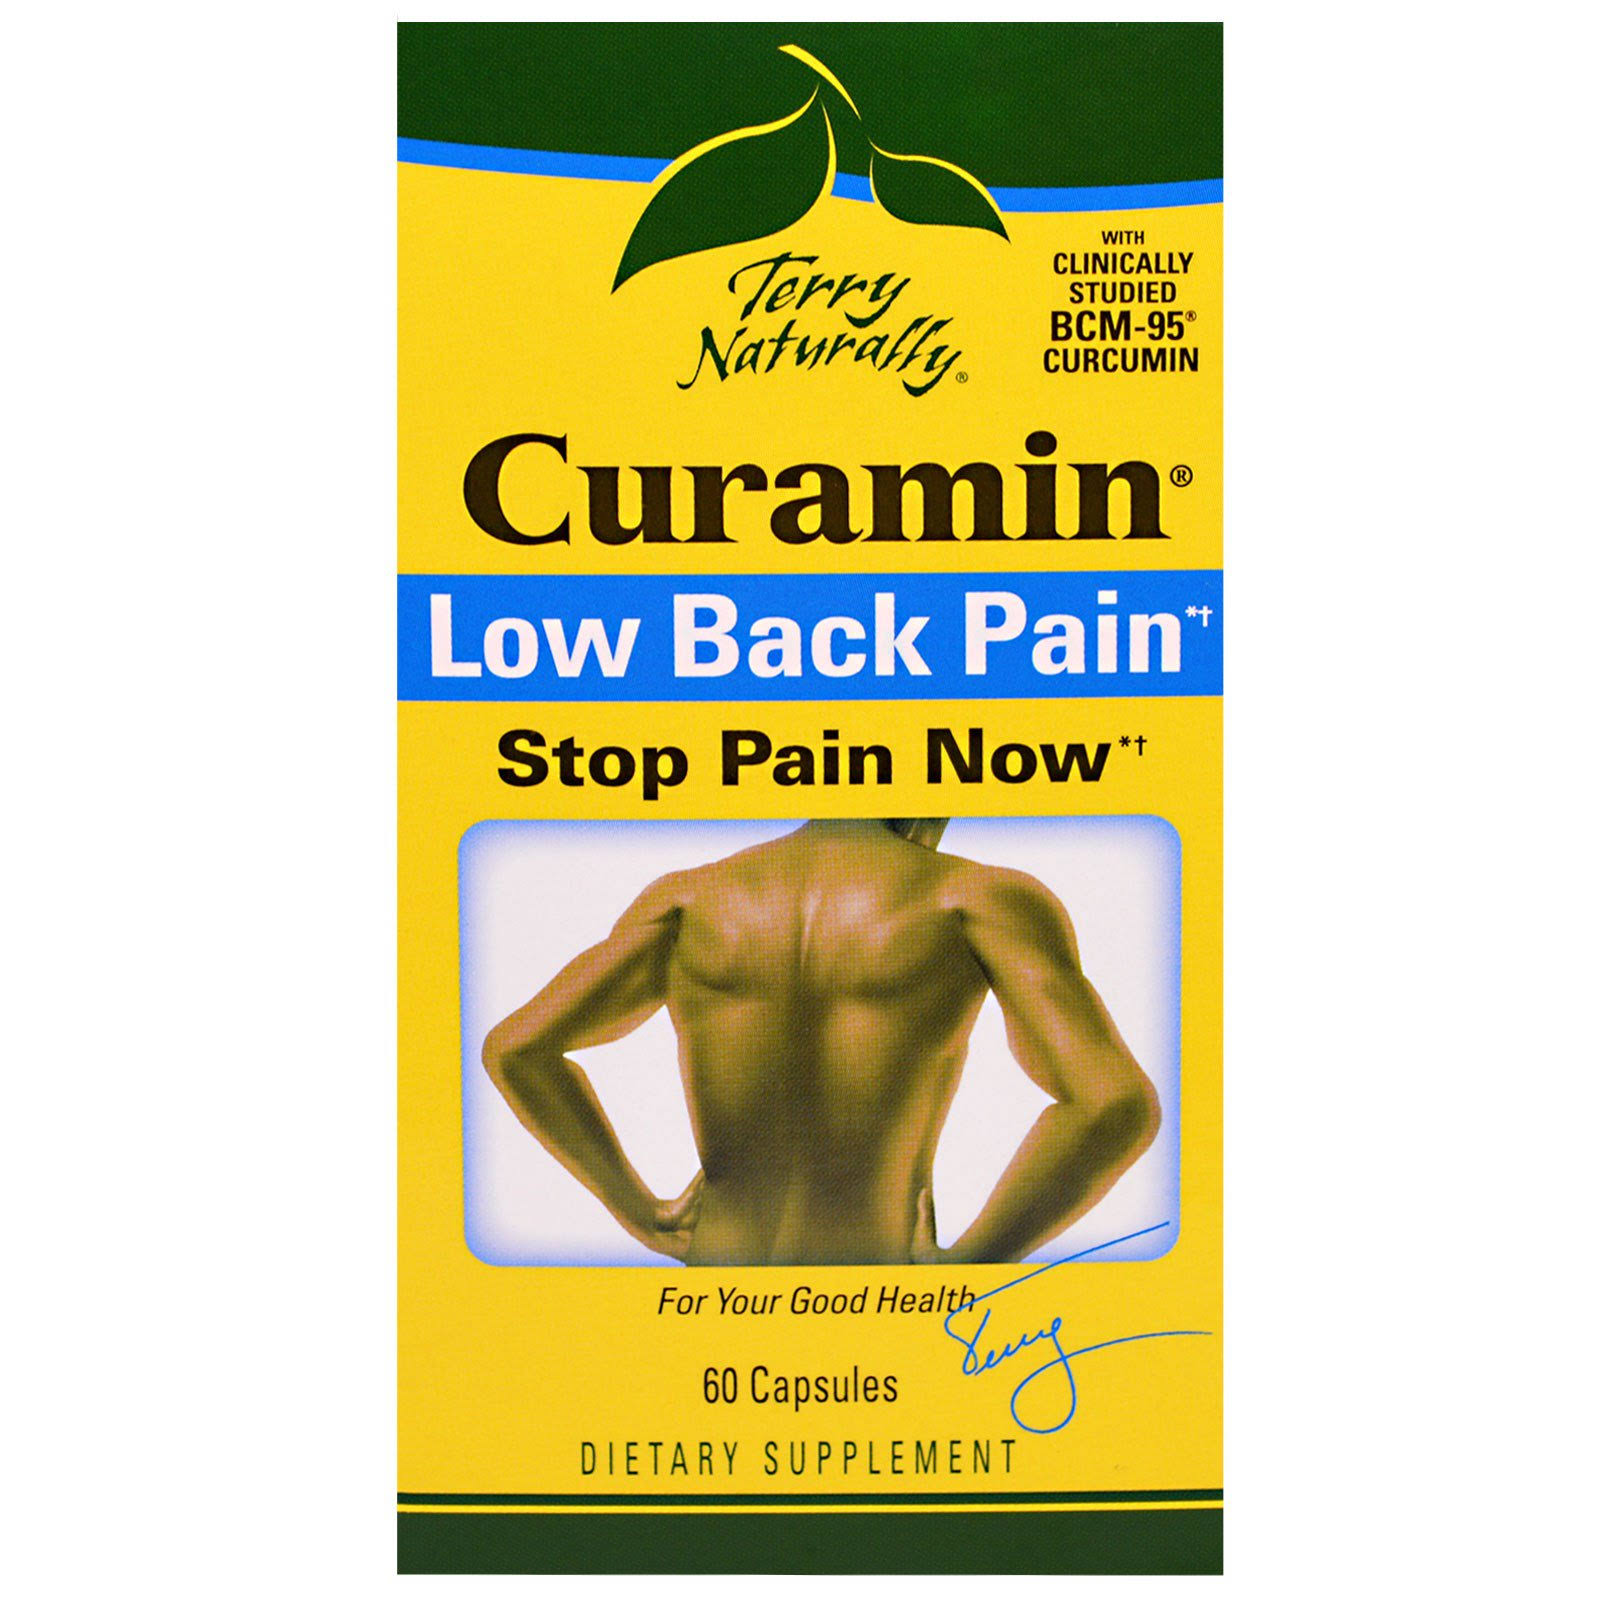 Terry Naturally Curamin Low Back Pain Dietary Supplement Capsules - 60ct